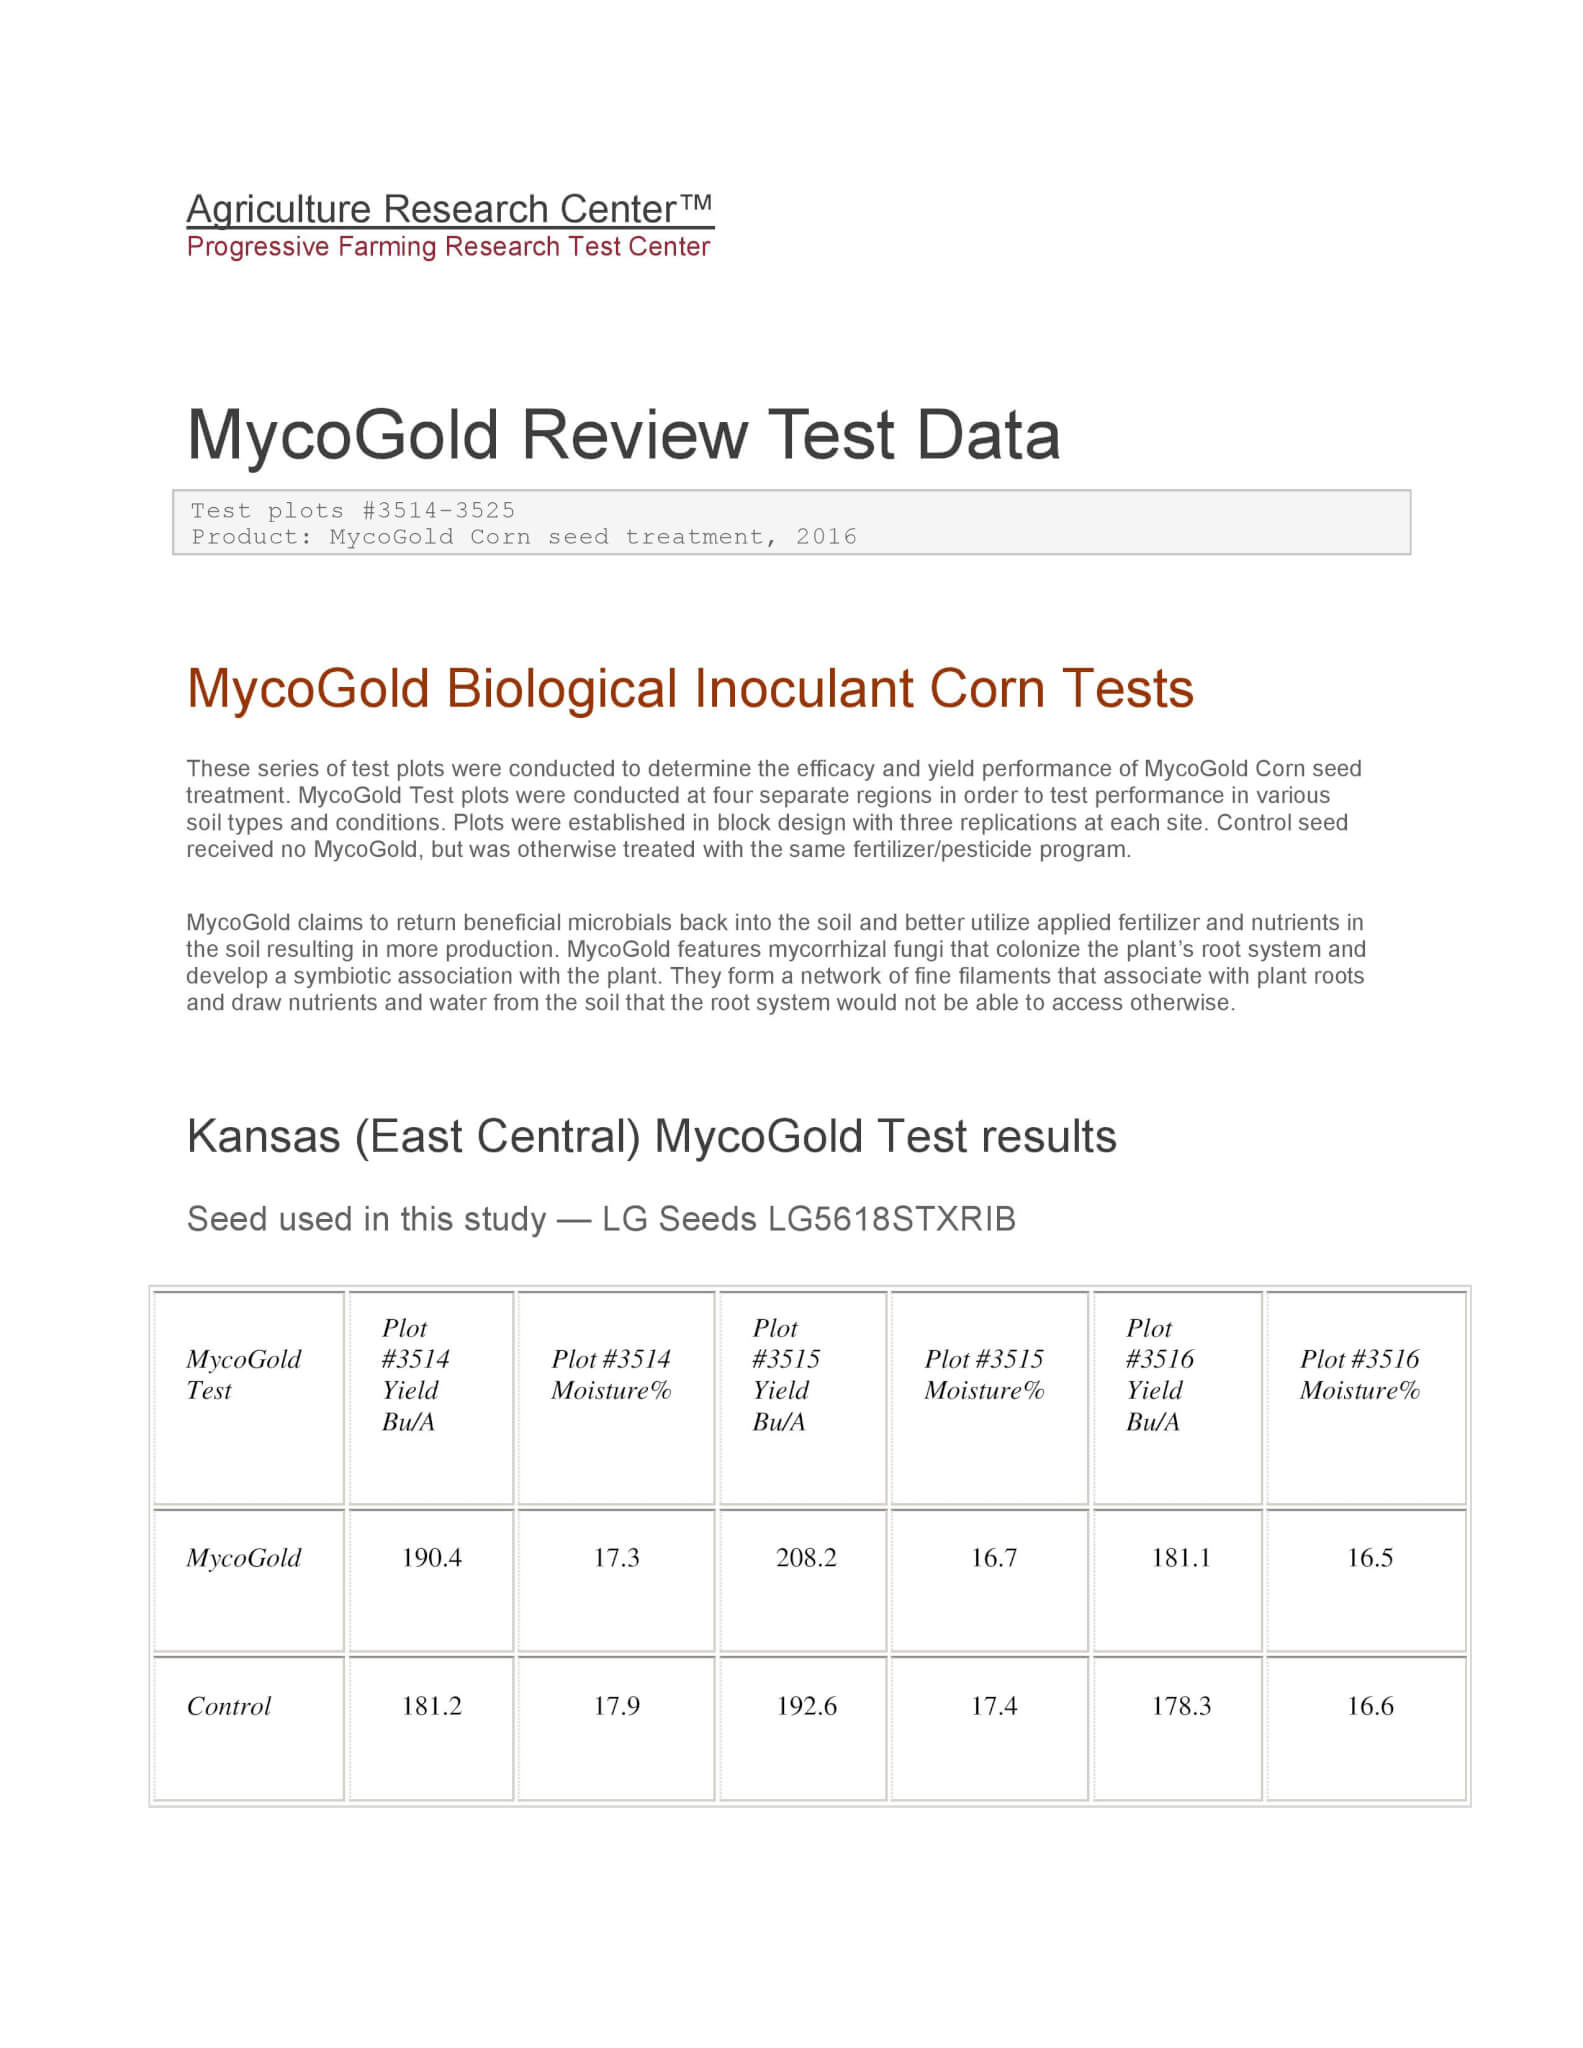 MycoGold reviews